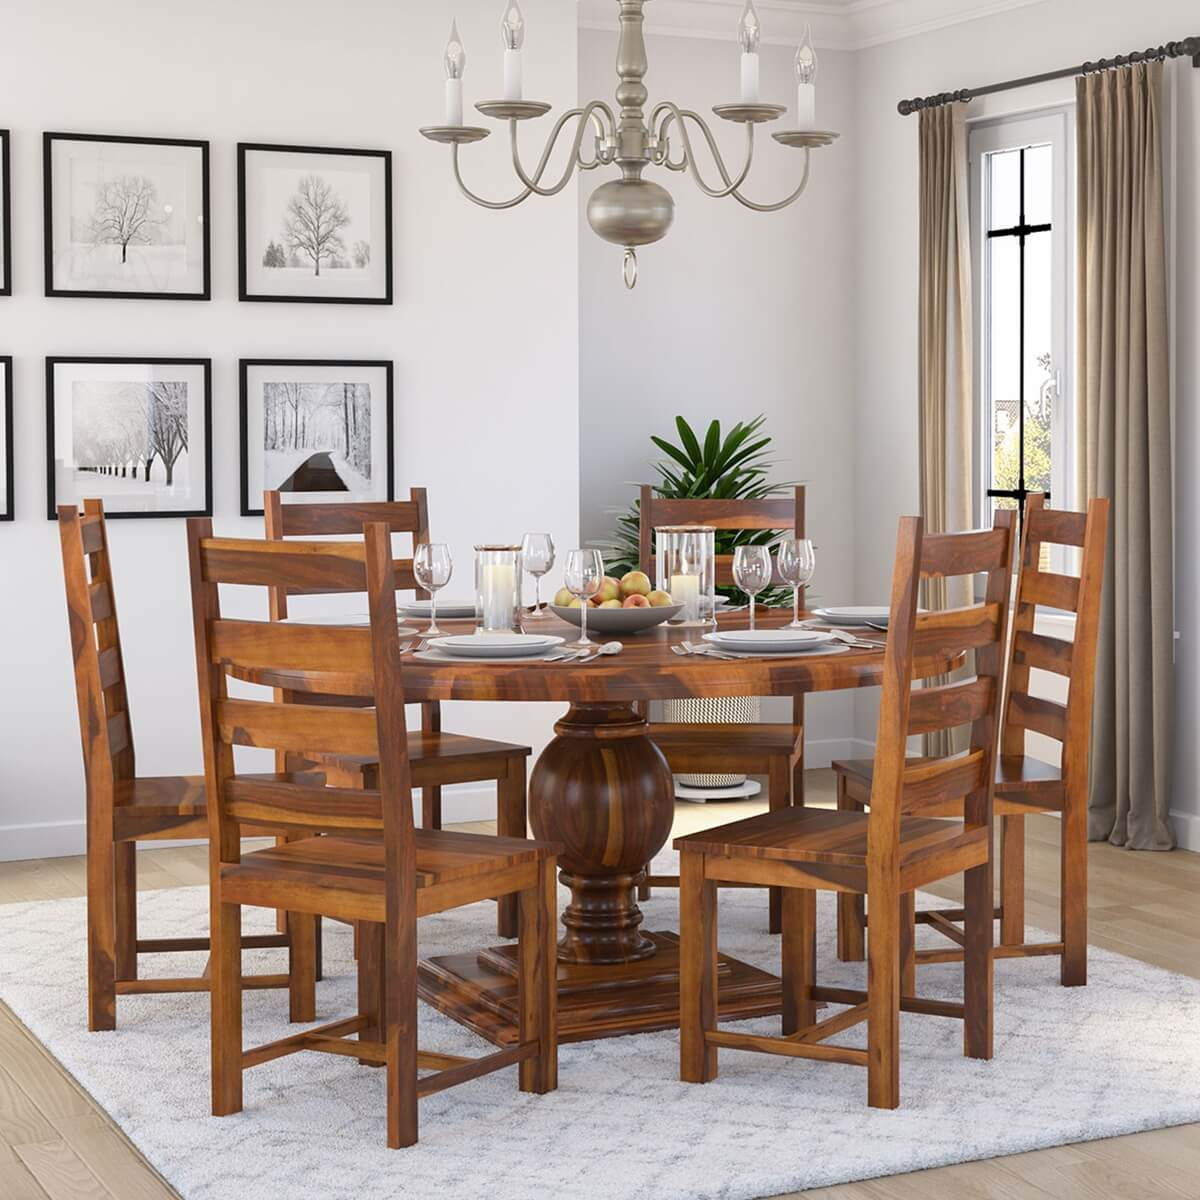 round table 6 chairs dimensions folding rocker lawn cloverdale solid wood dining with set